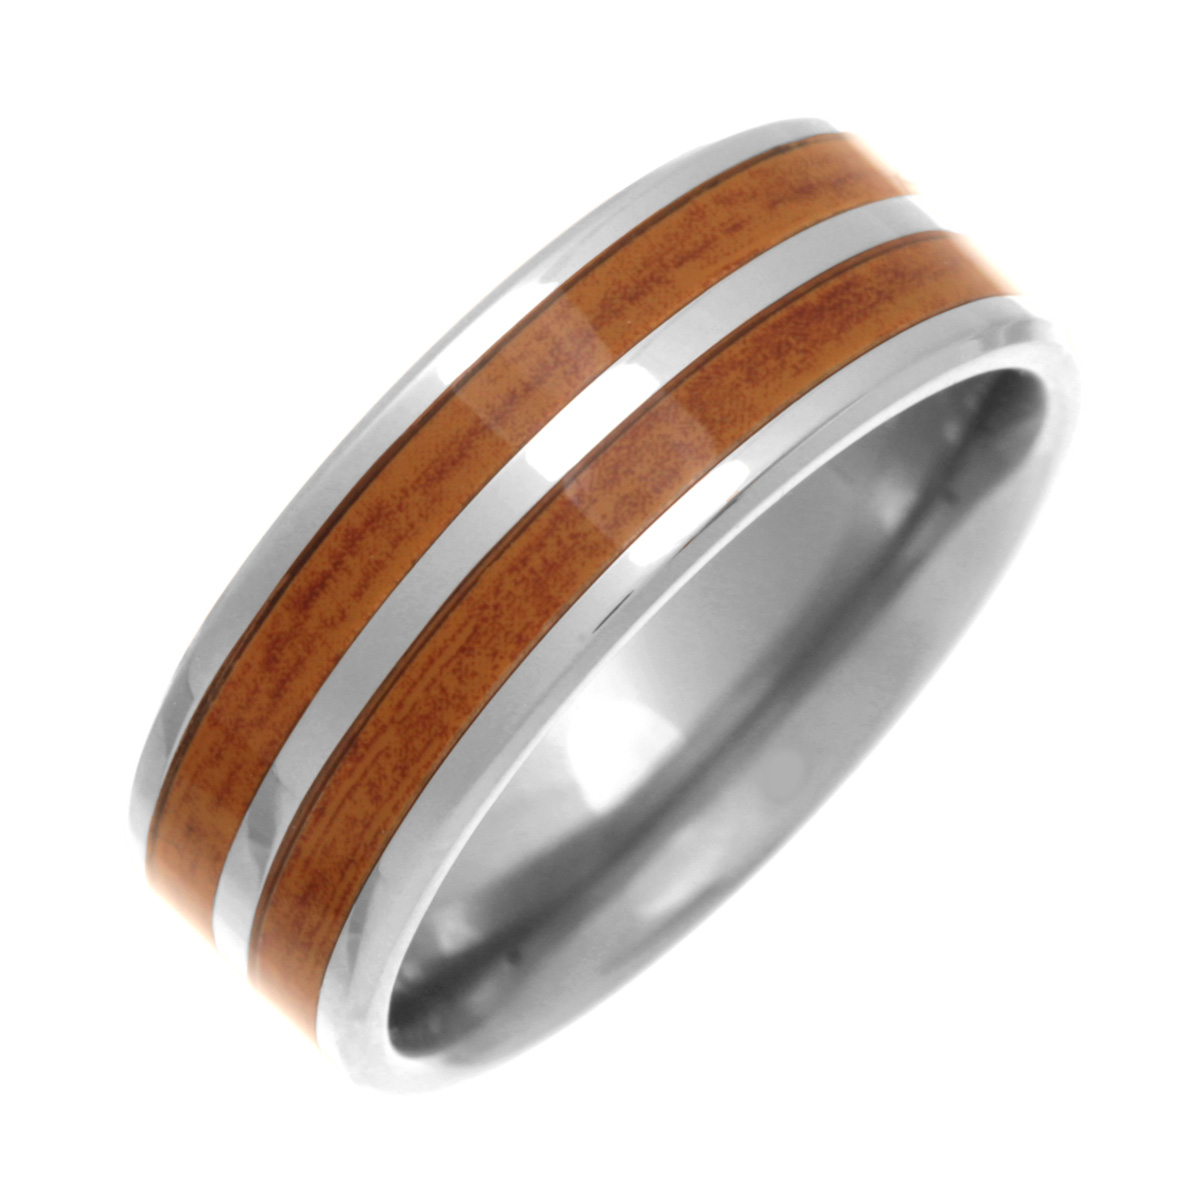 inlay wooden wedding rings AHImU wooden wedding rings Ideas About Wood Engagement Ring On Pinterest Jpeg 8mm